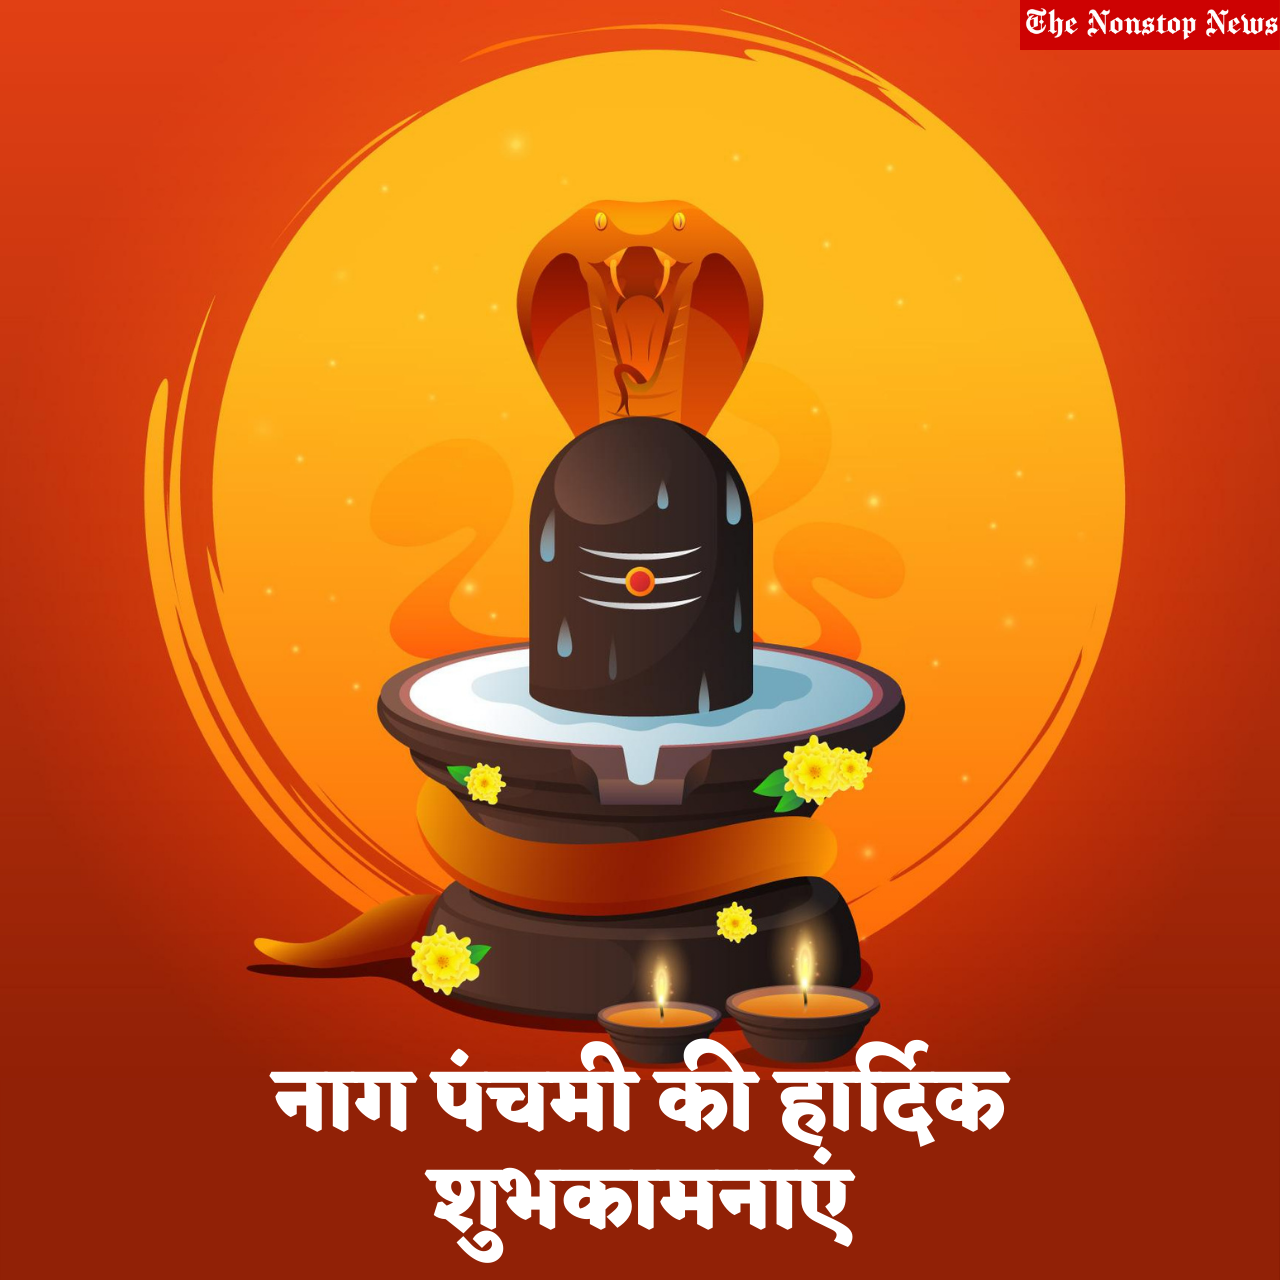 Nag Panchami 2021 Hindi Wishes and HD Images: Wallpaper, Stickers, Status, Messages, Quotes, Poster, and Greetings to greet your friends and relatives in Hindi